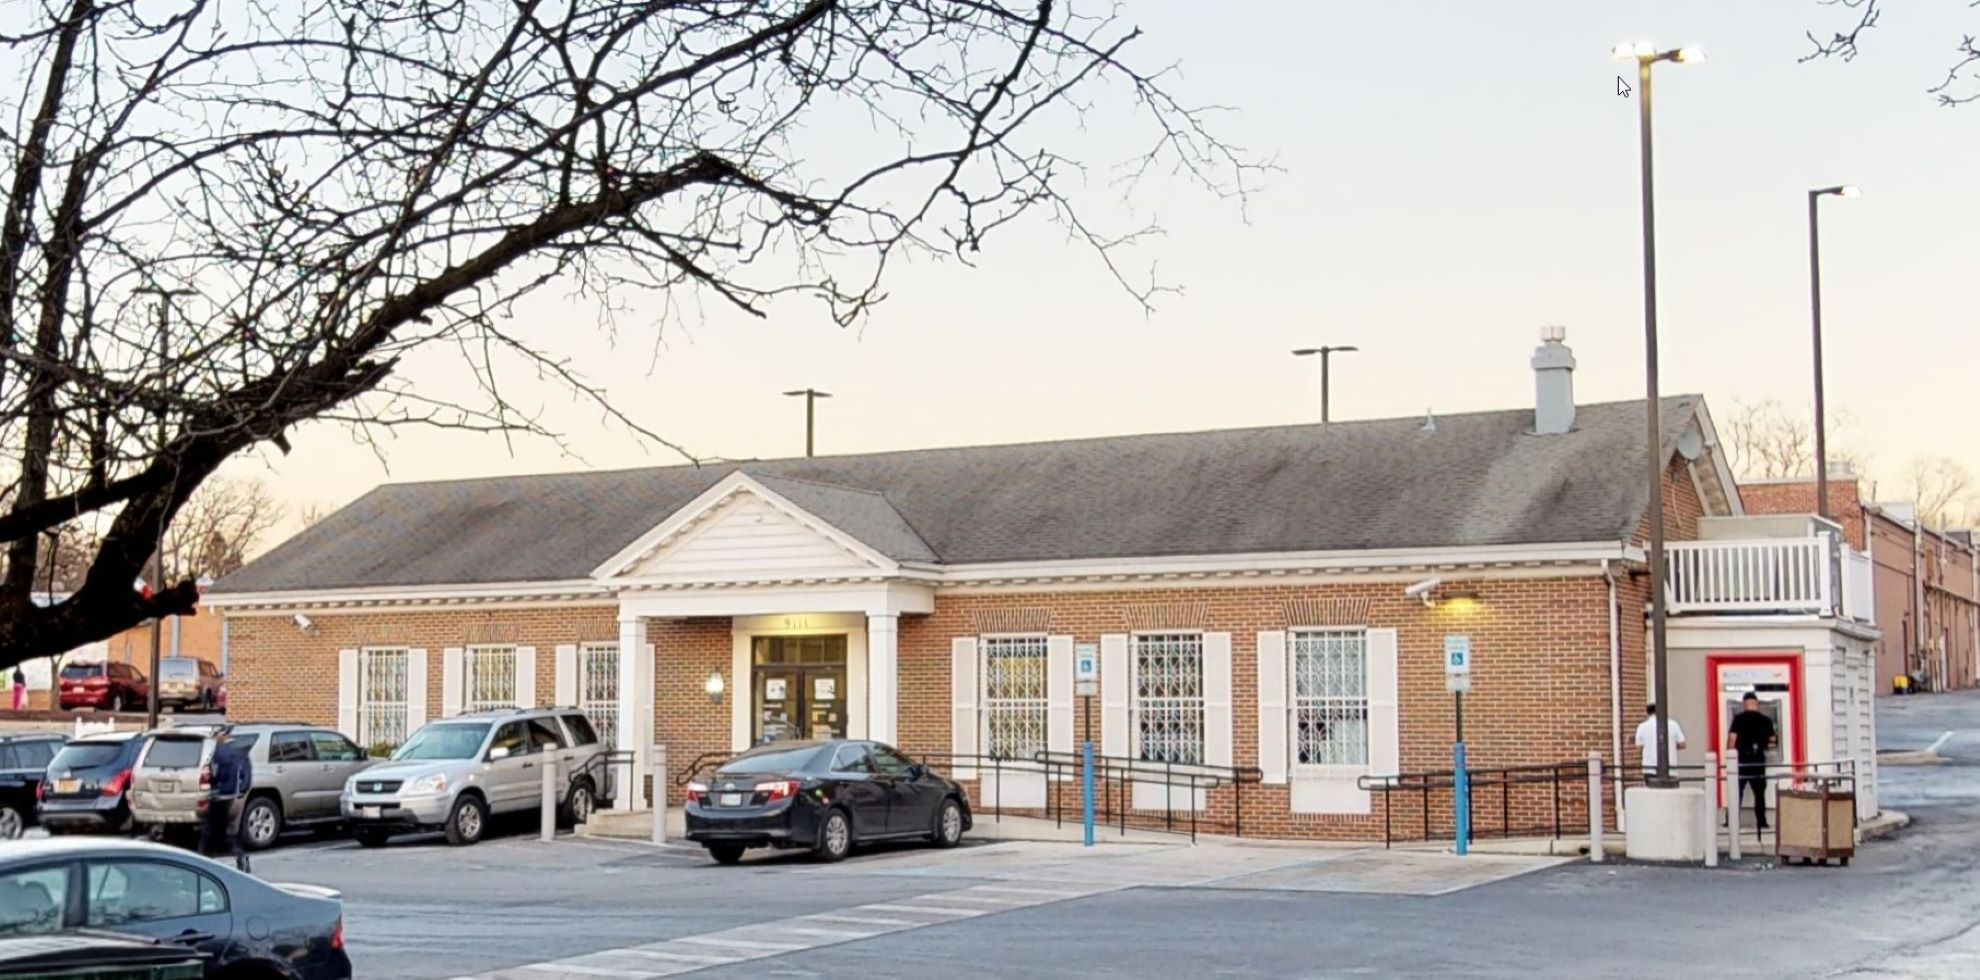 Bank of America financial center with drive-thru ATM | 9111 Riggs Rd, Adelphi, MD 20783